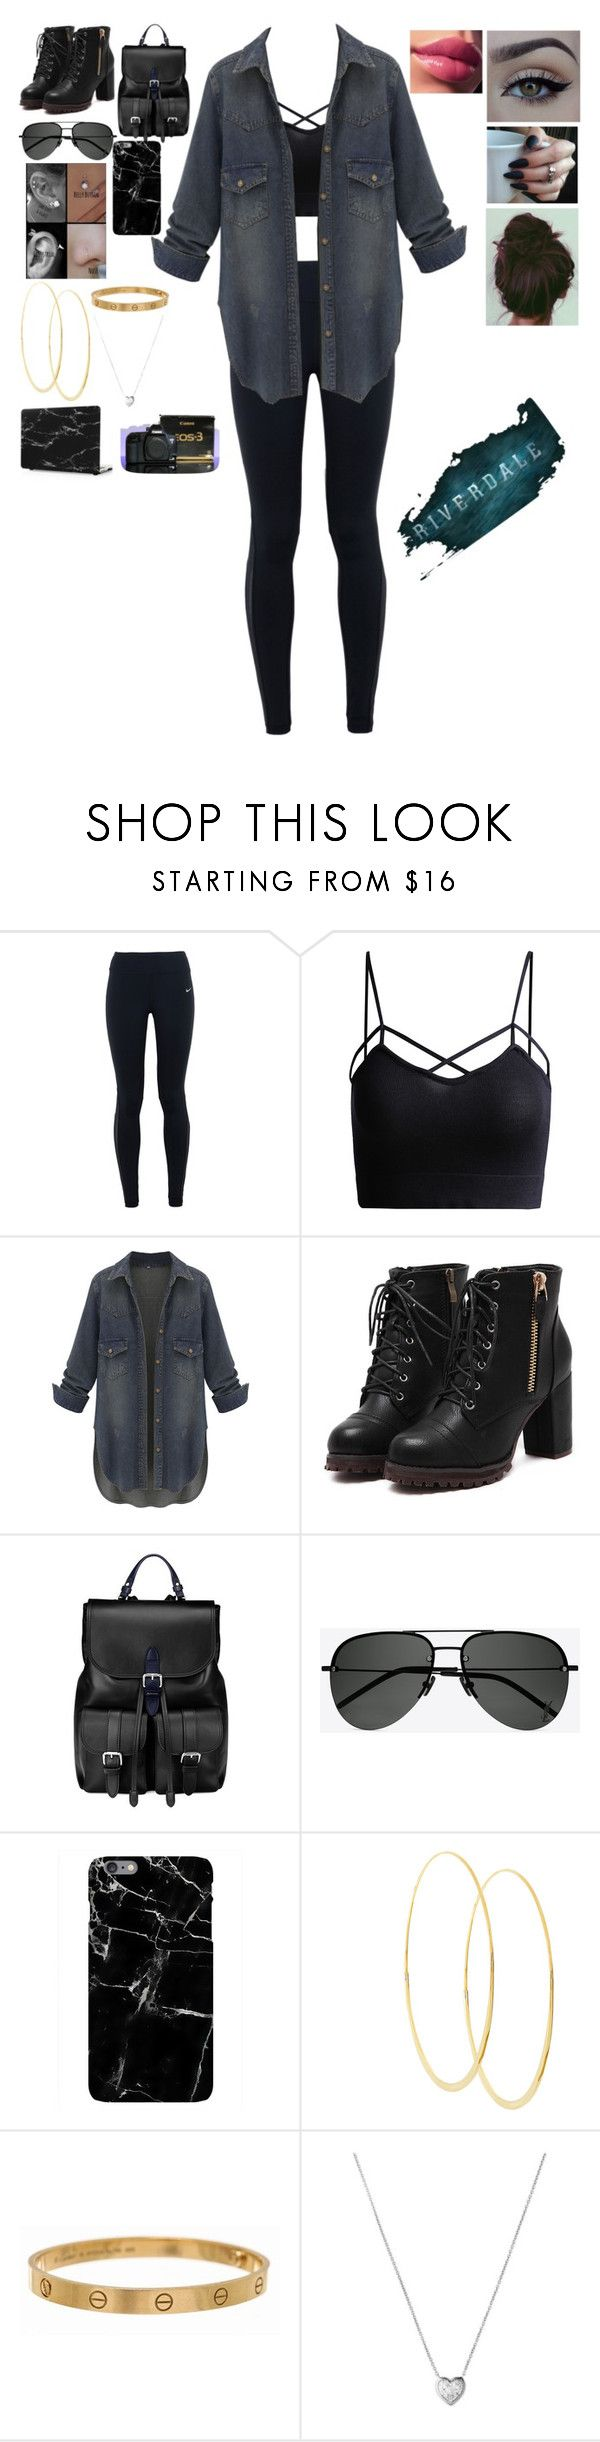 """""""~Riverdale~ Female Jughead Jones"""" by s2a4m ❤ liked on Polyvore featuring NIKE, Aspinal of London, Yves Saint Laurent, Harper & Blake, Lana, Cartier, Links of London, xO Design and Eos"""